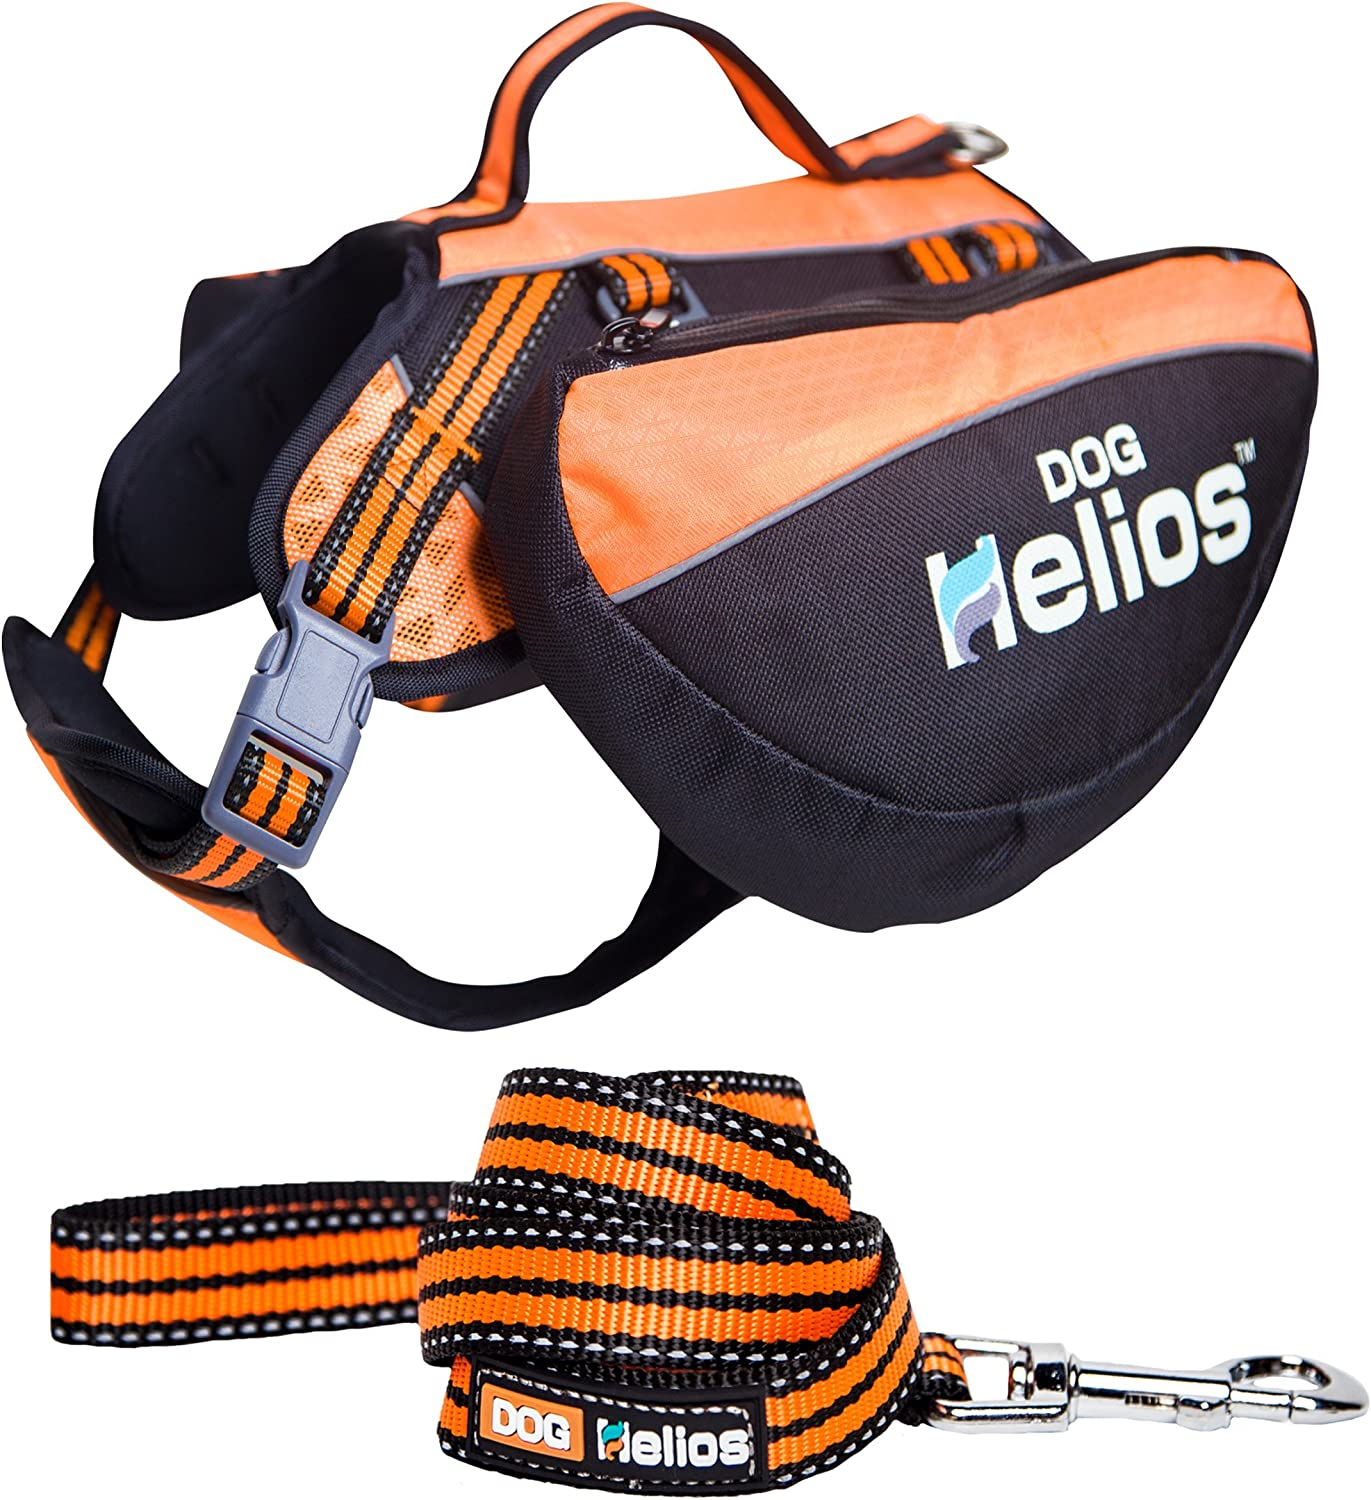 DOGHELIOS Freestyle 3in1 Explorer Sporty Fashion Congreenible Pet Dog Backpack, Harness and Leash, Large, orange